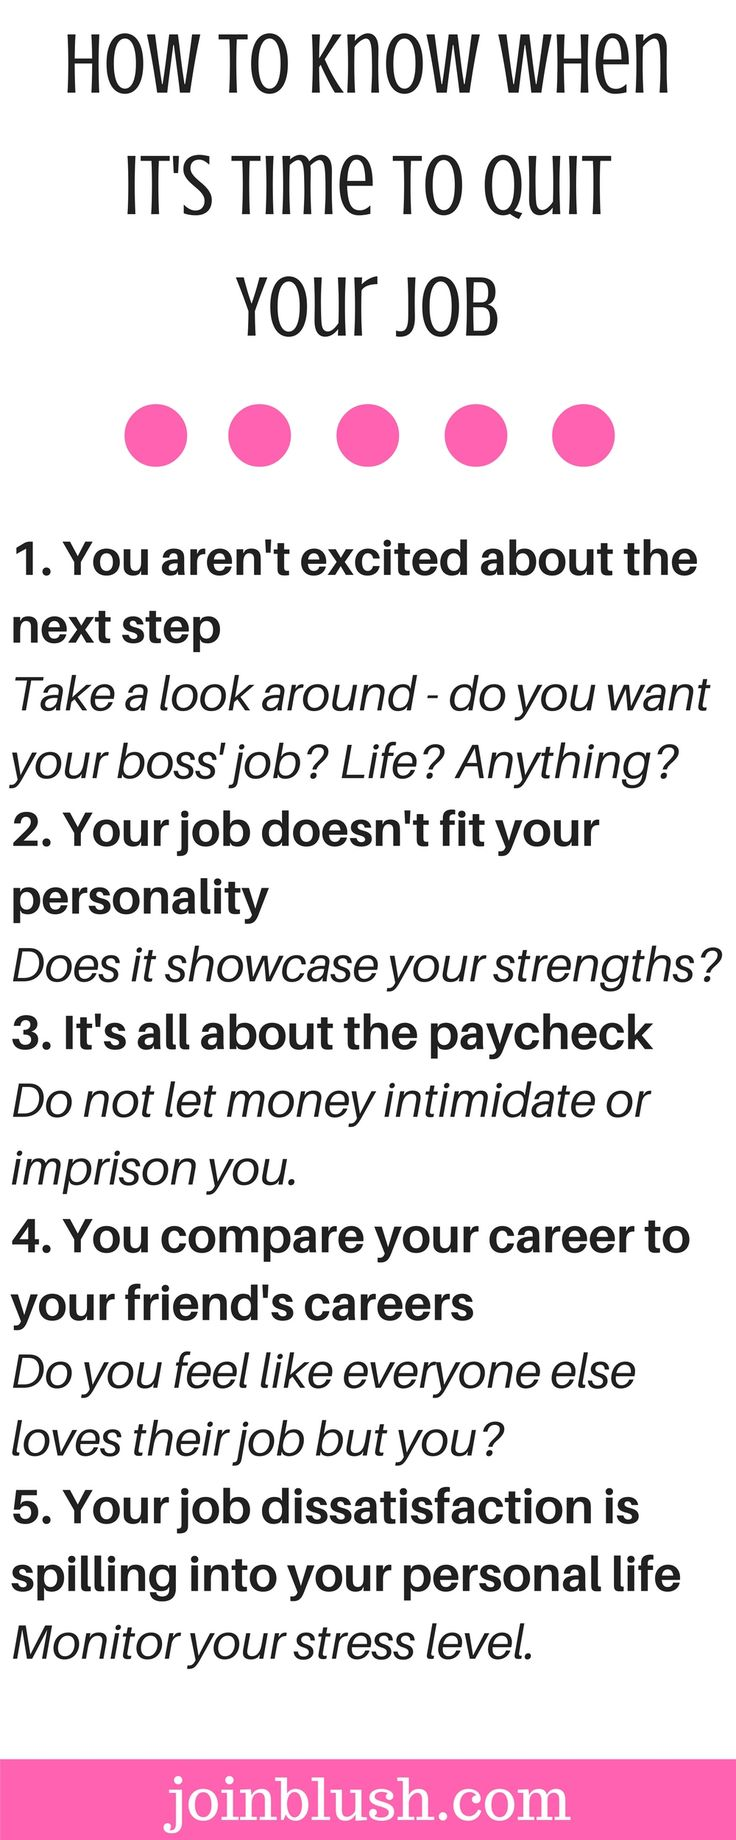 you and your career Whether you're looking to find a job, switch careers, or advance at your current position, we can help you take your career to the next level.